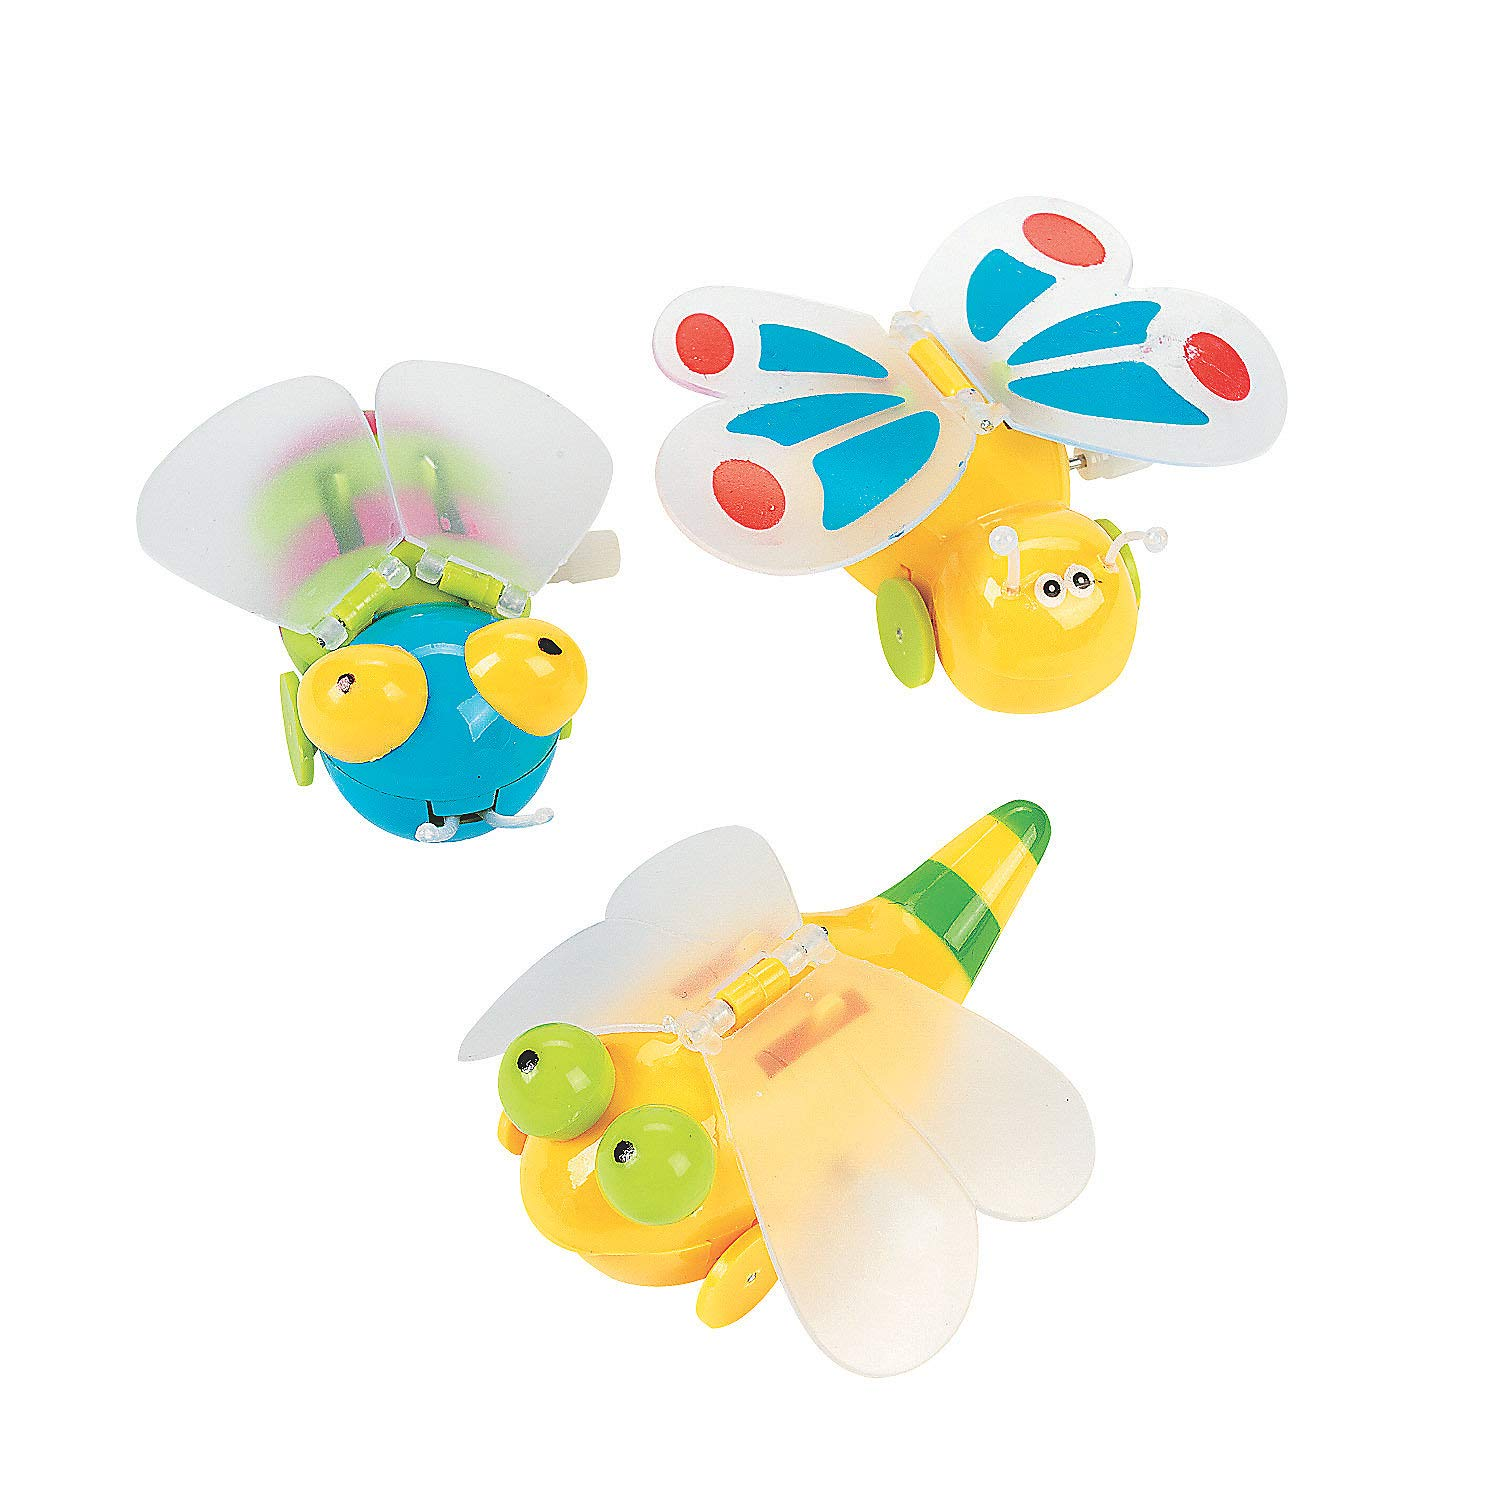 Fun Express - Wind-Up Flying Bugs - Toys - Character Toys - Wind Ups & Paratroopers - 12 Pieces by Fun Express